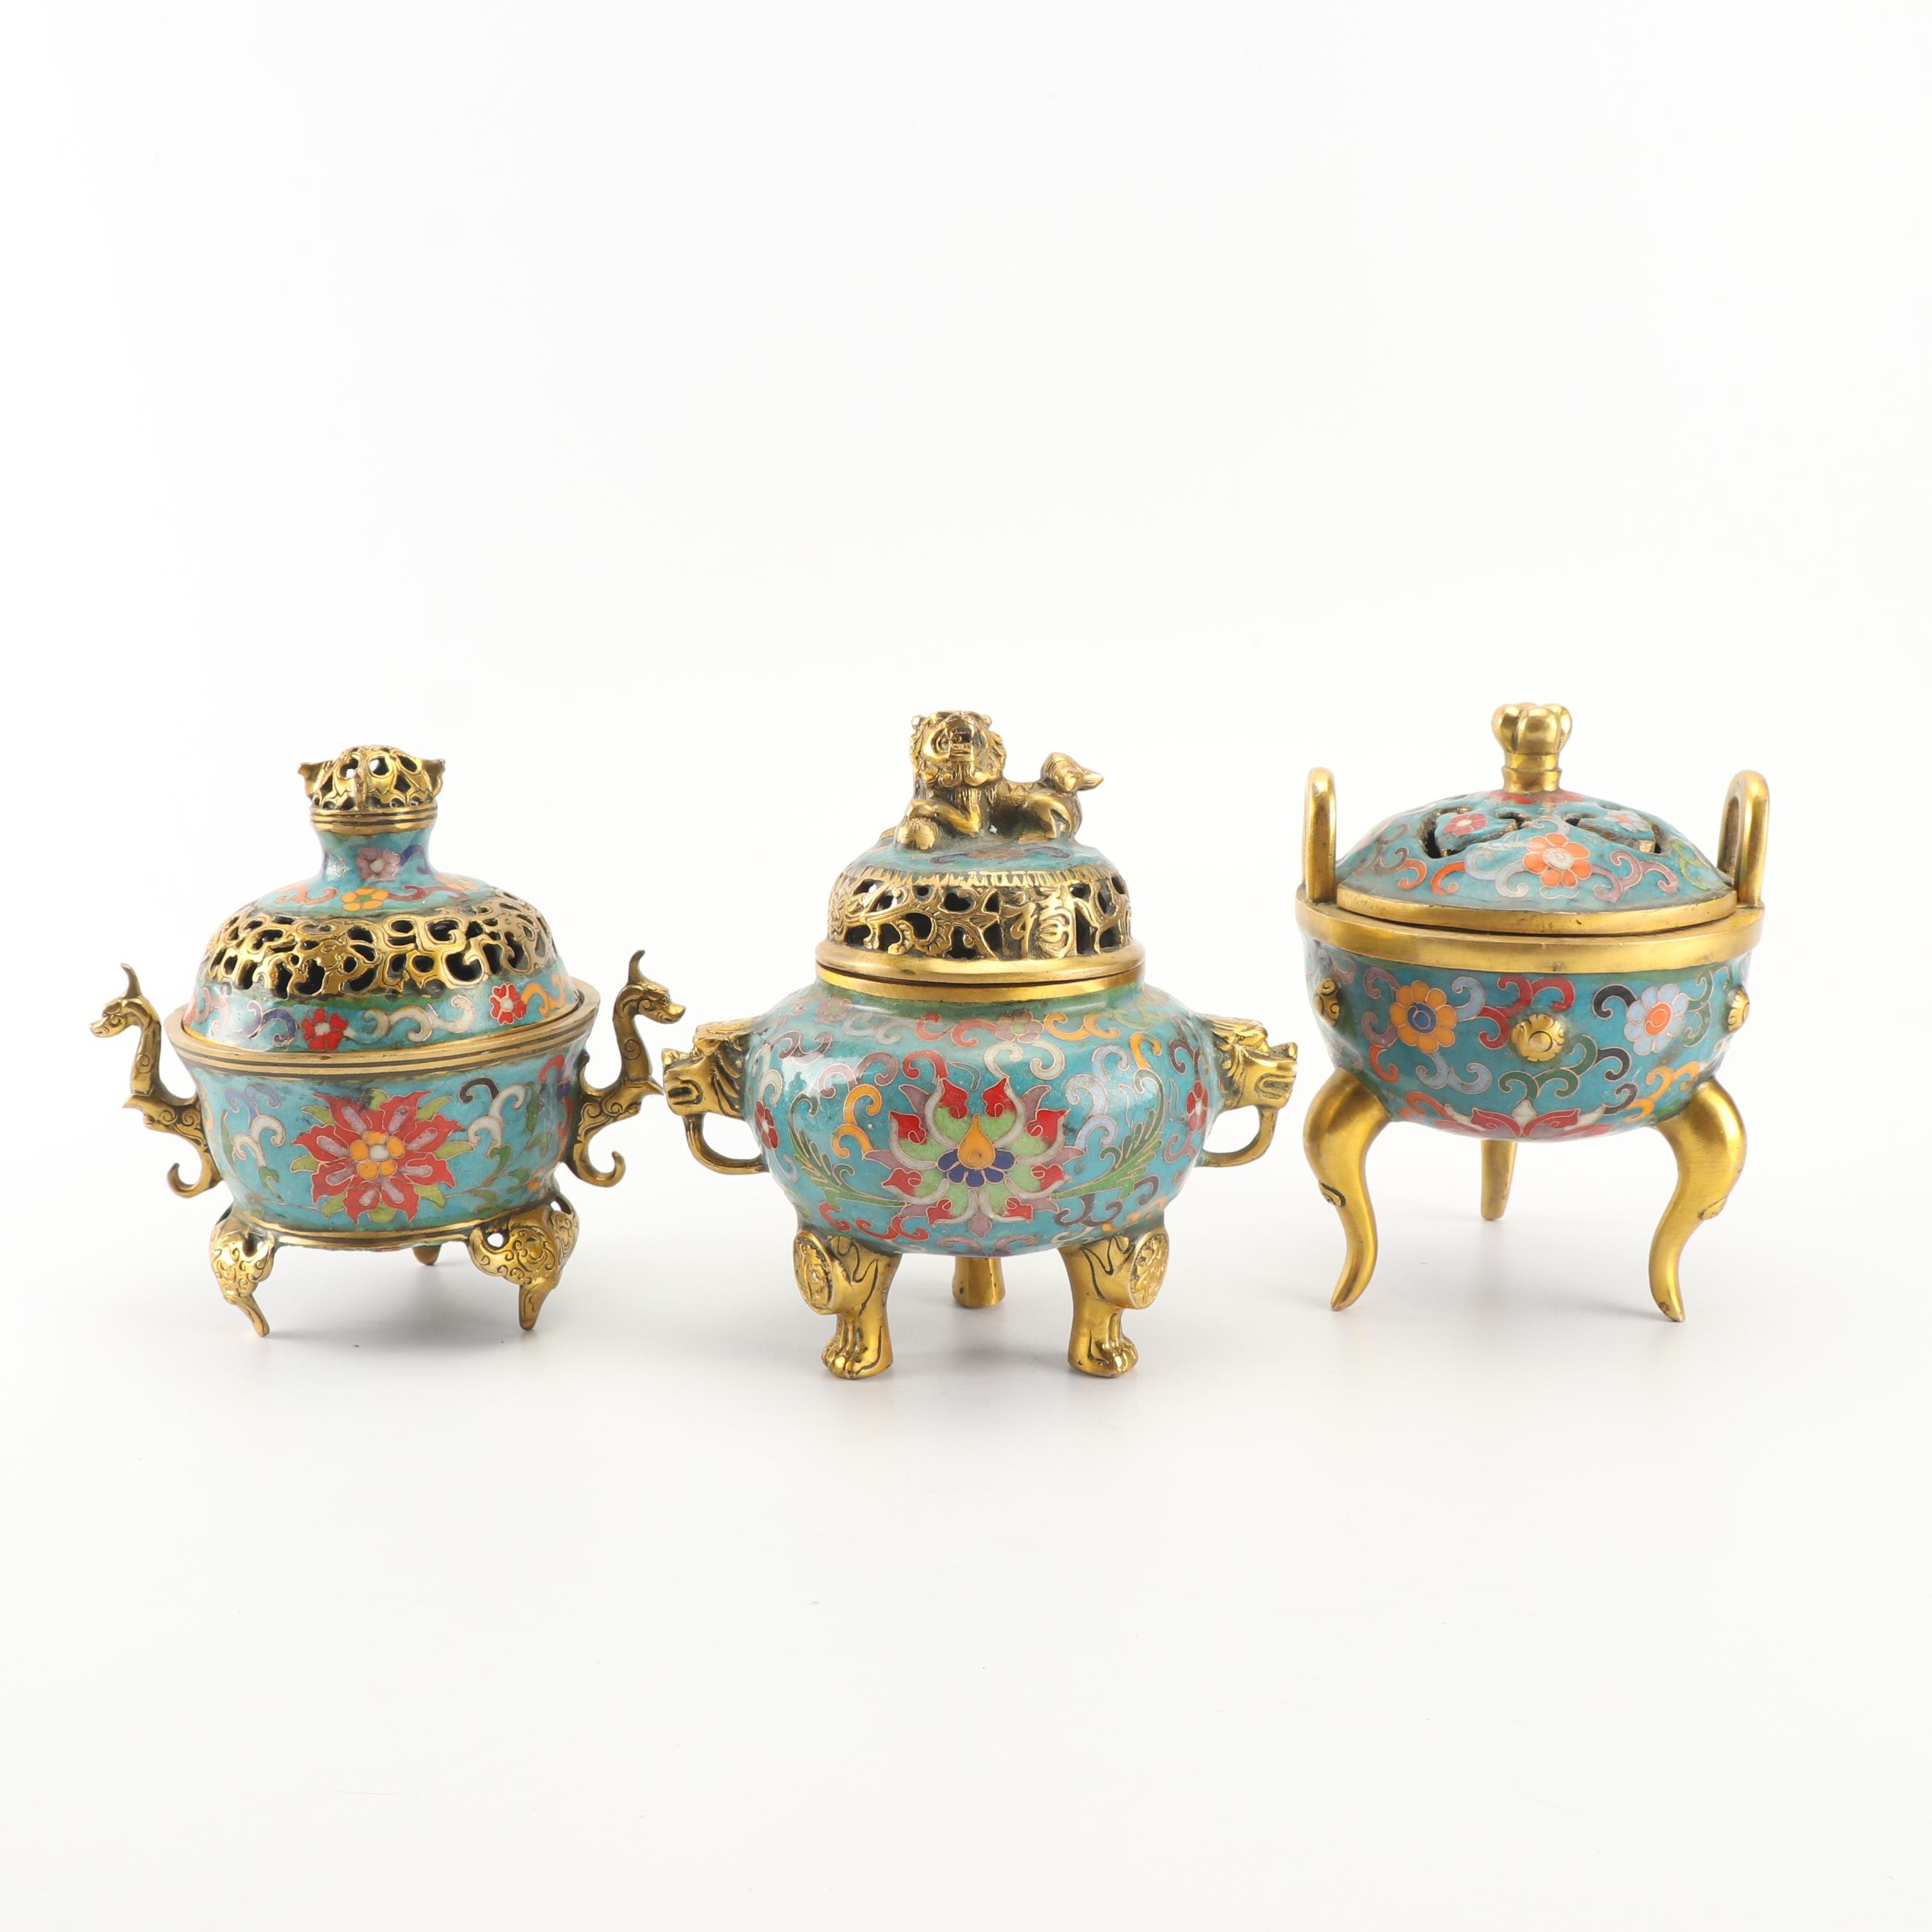 Chinese Cloisonné Incense Burners